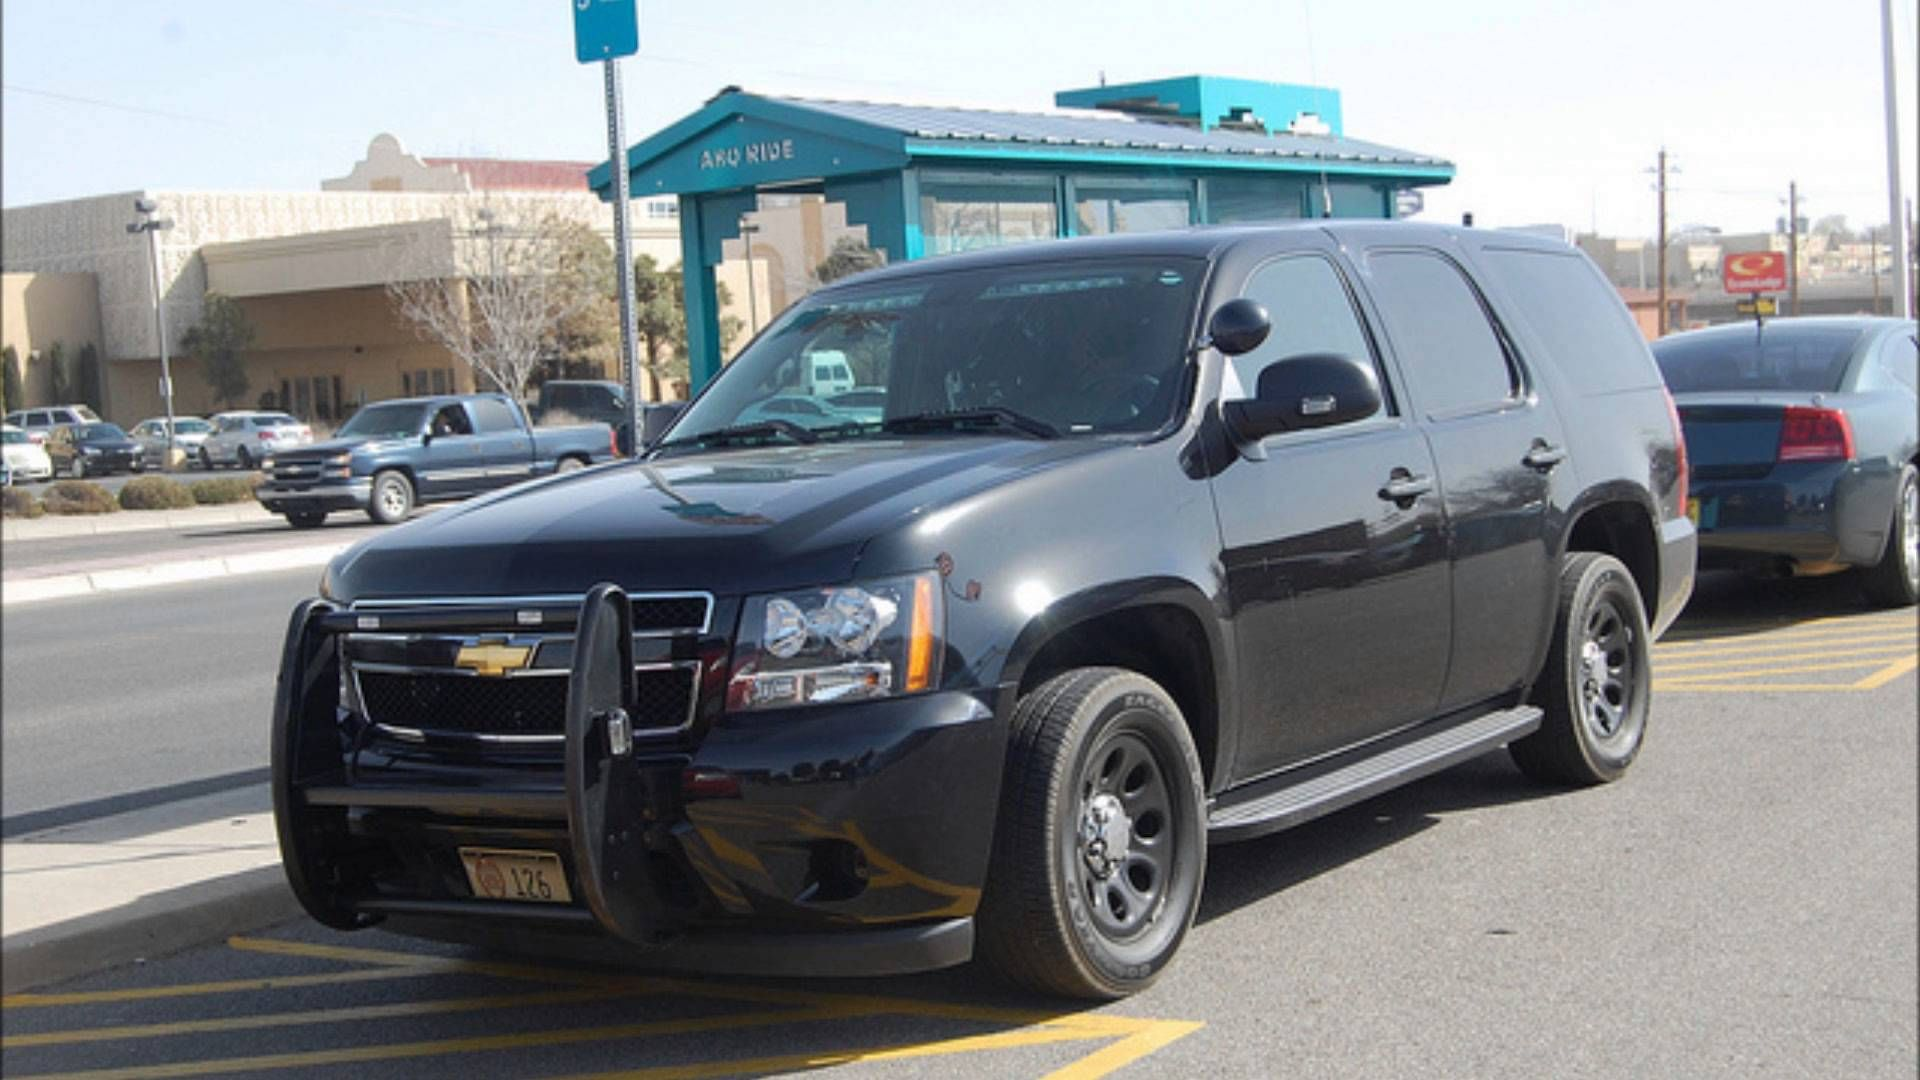 Pin By Tyler Hays On Nmsp Chevrolet Tahoe State Police Police Cars